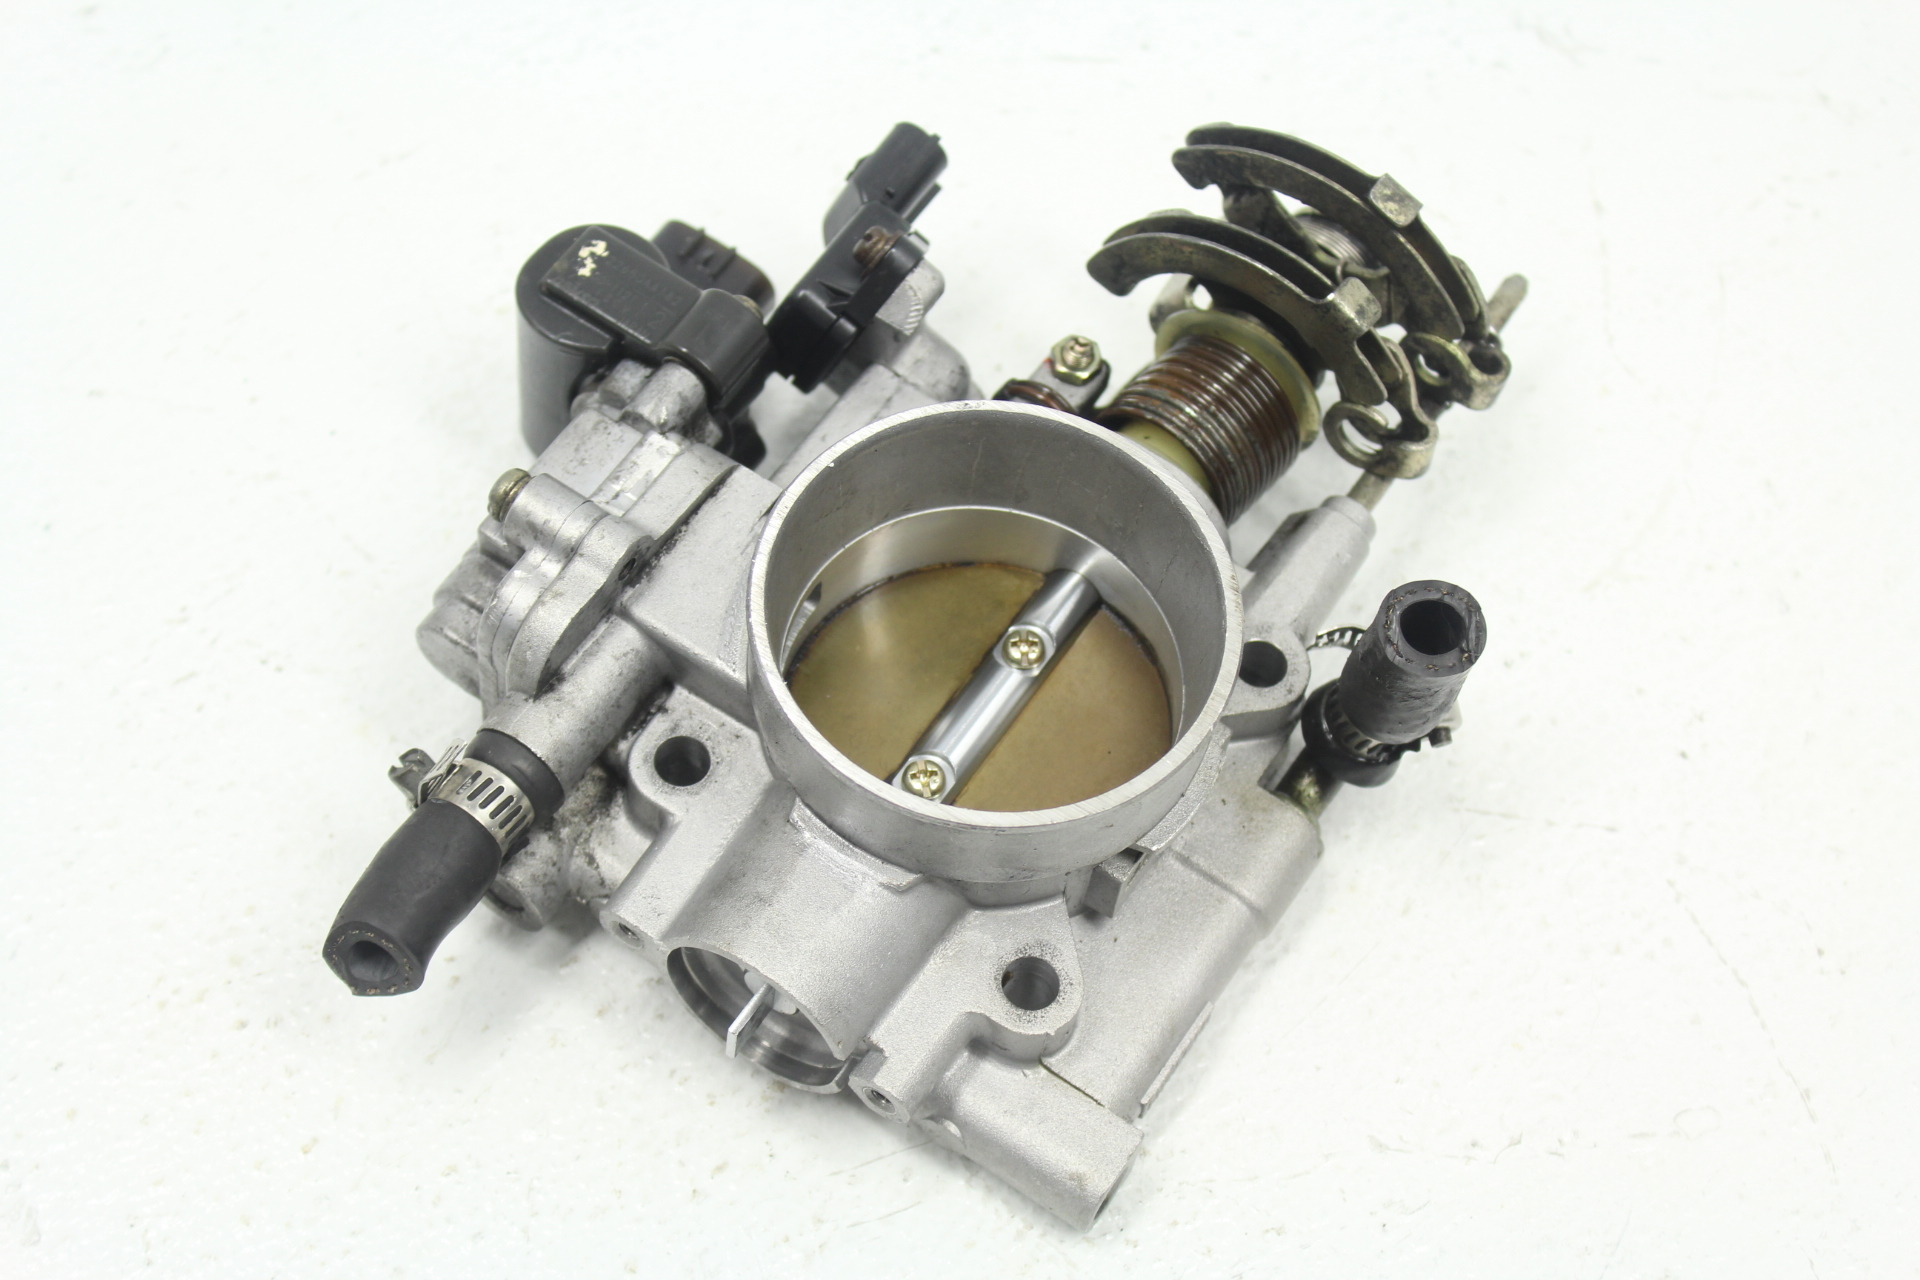 02 Subaru Legacy outback oem 2.5 throttle body assembly